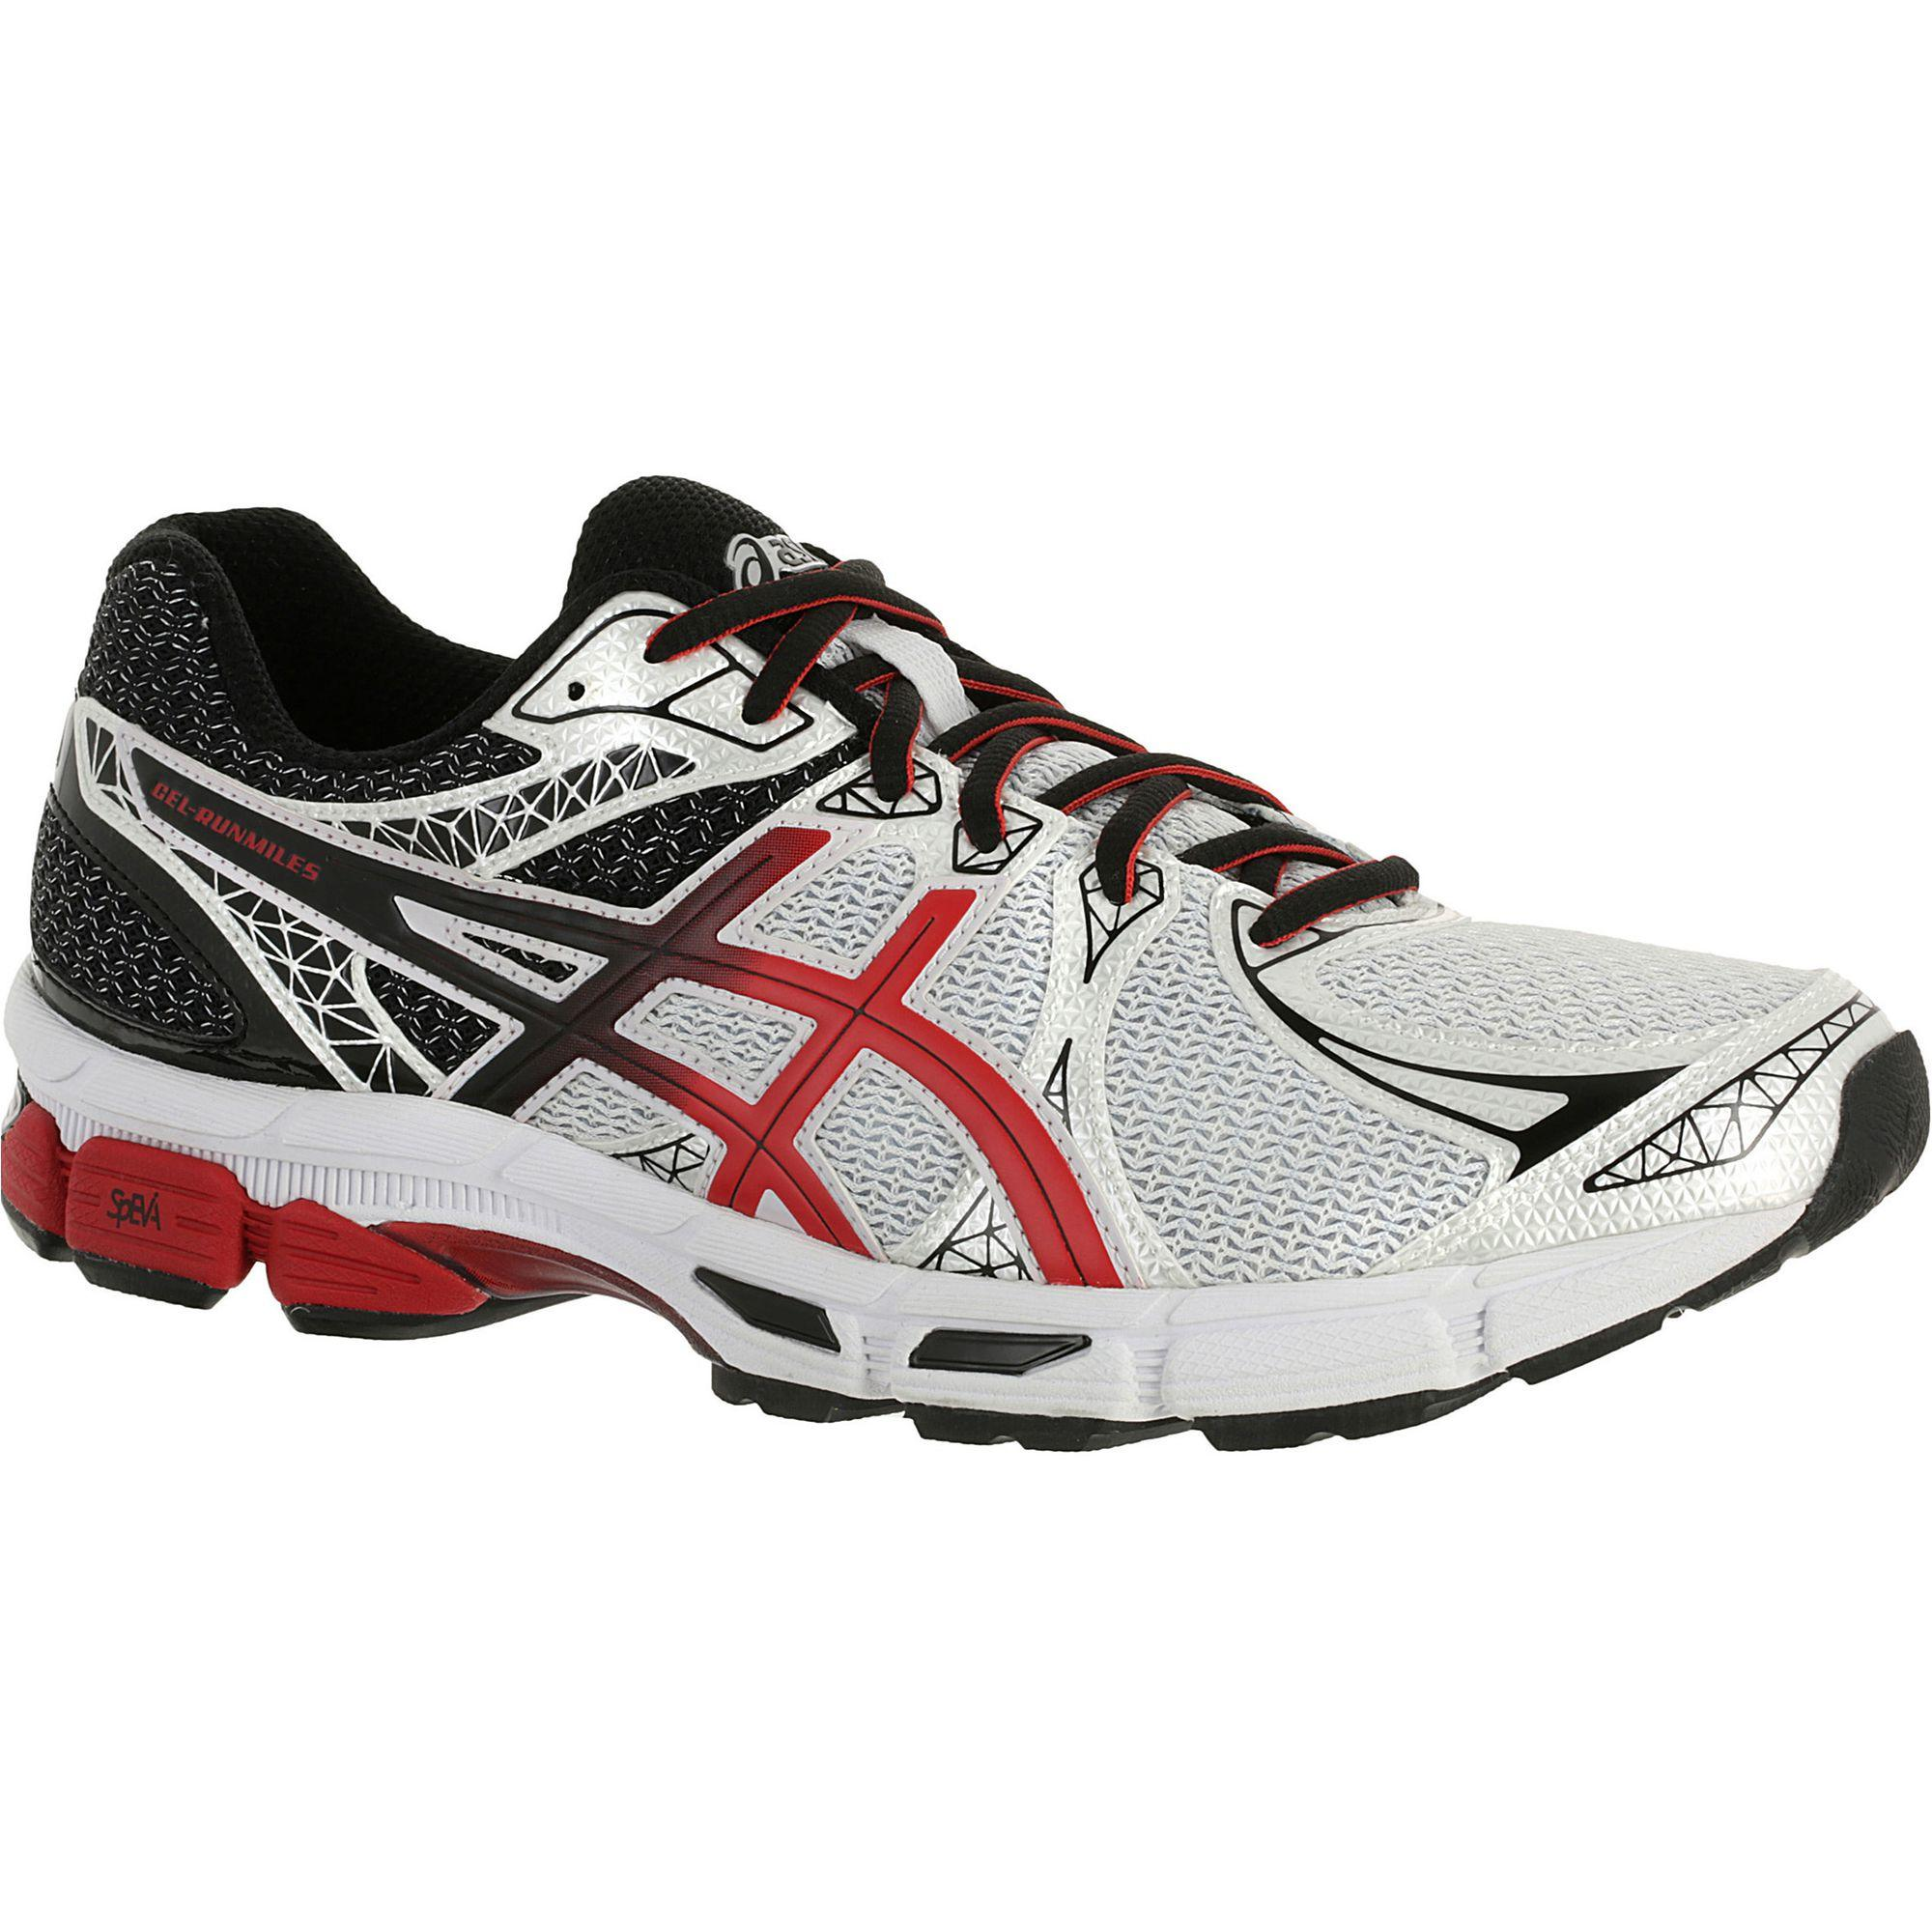 Running Pied À Homme Gel Runmiles Course Route Chaussures Asics rsQtdh